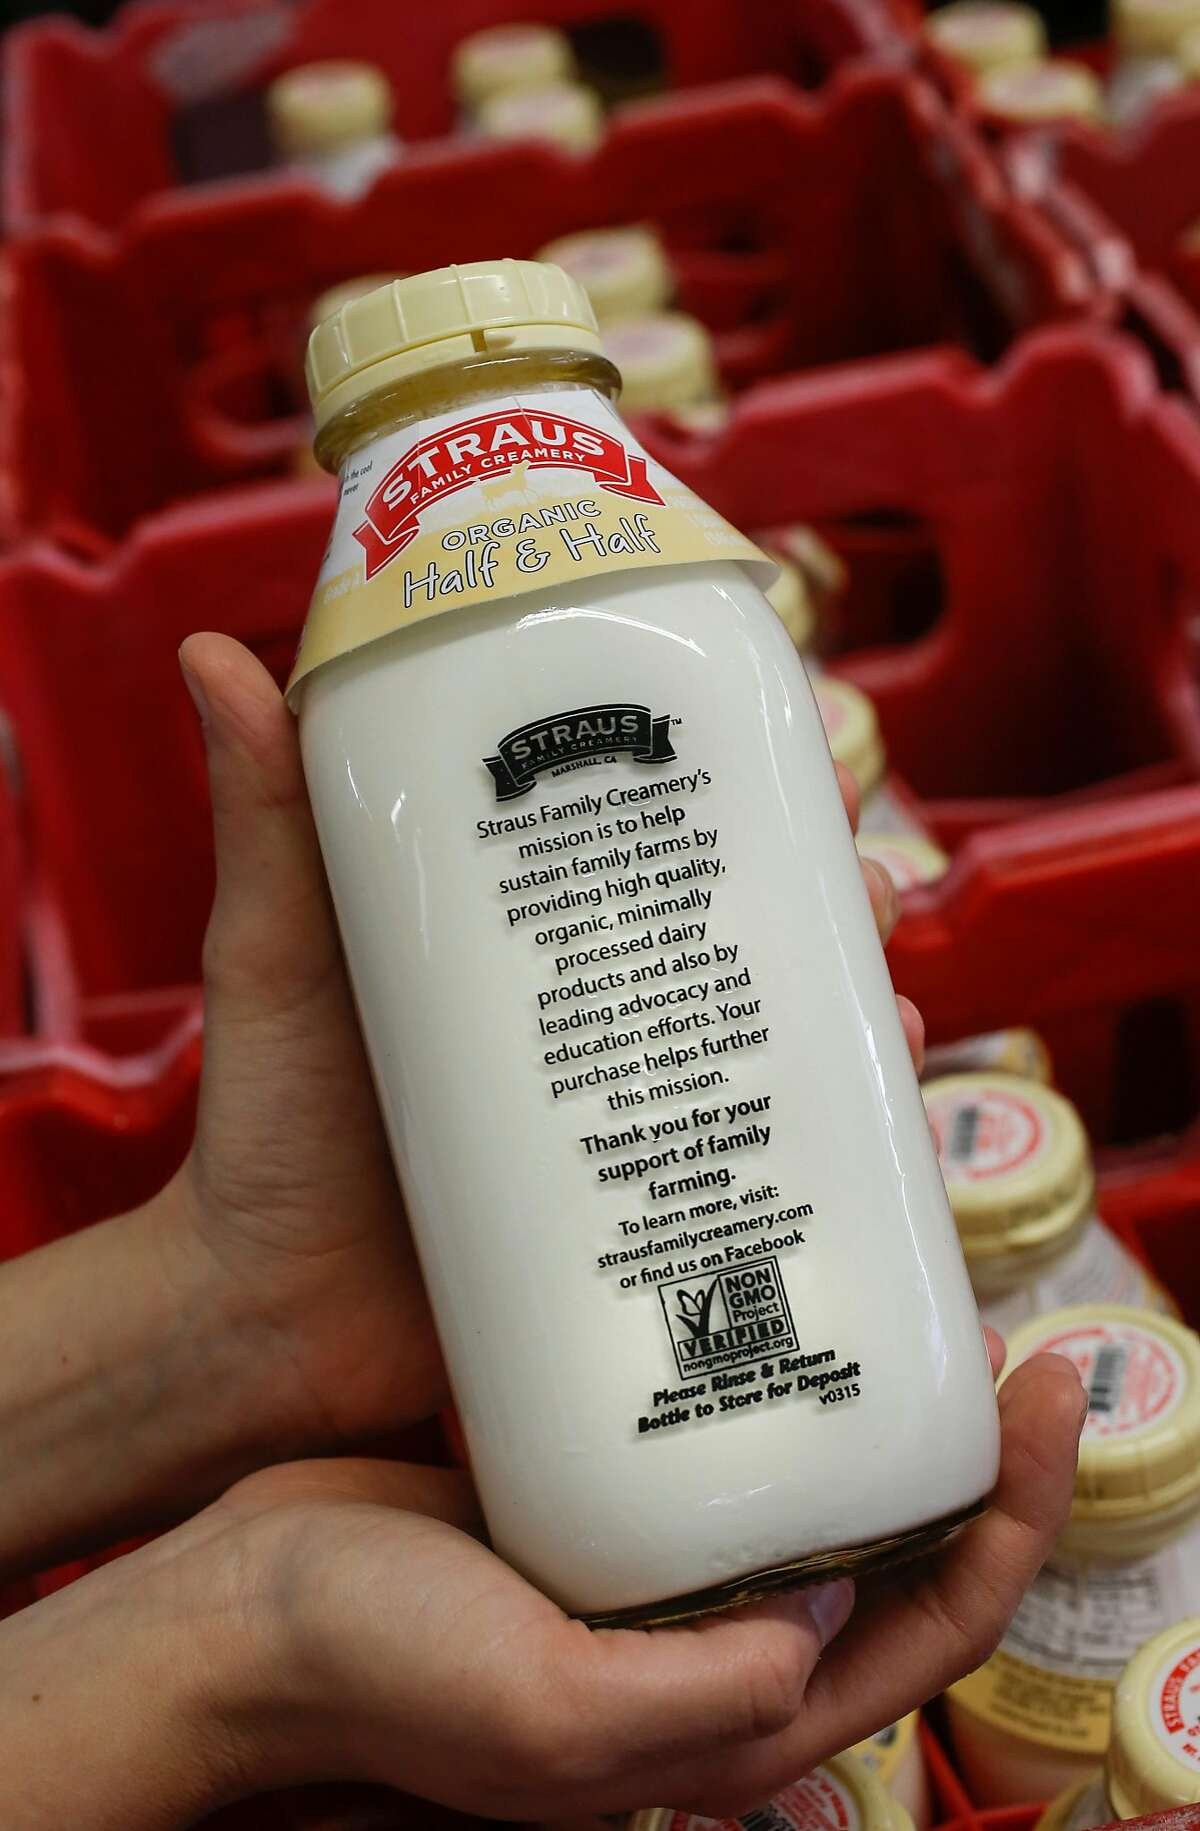 Organic non-GMO Half & Half in glass bottles carry the verified label on the back, during production at the processing plant of the organic dairy Straus Family Creamery in Marshall, California, on Thurs. March 24, 2016.